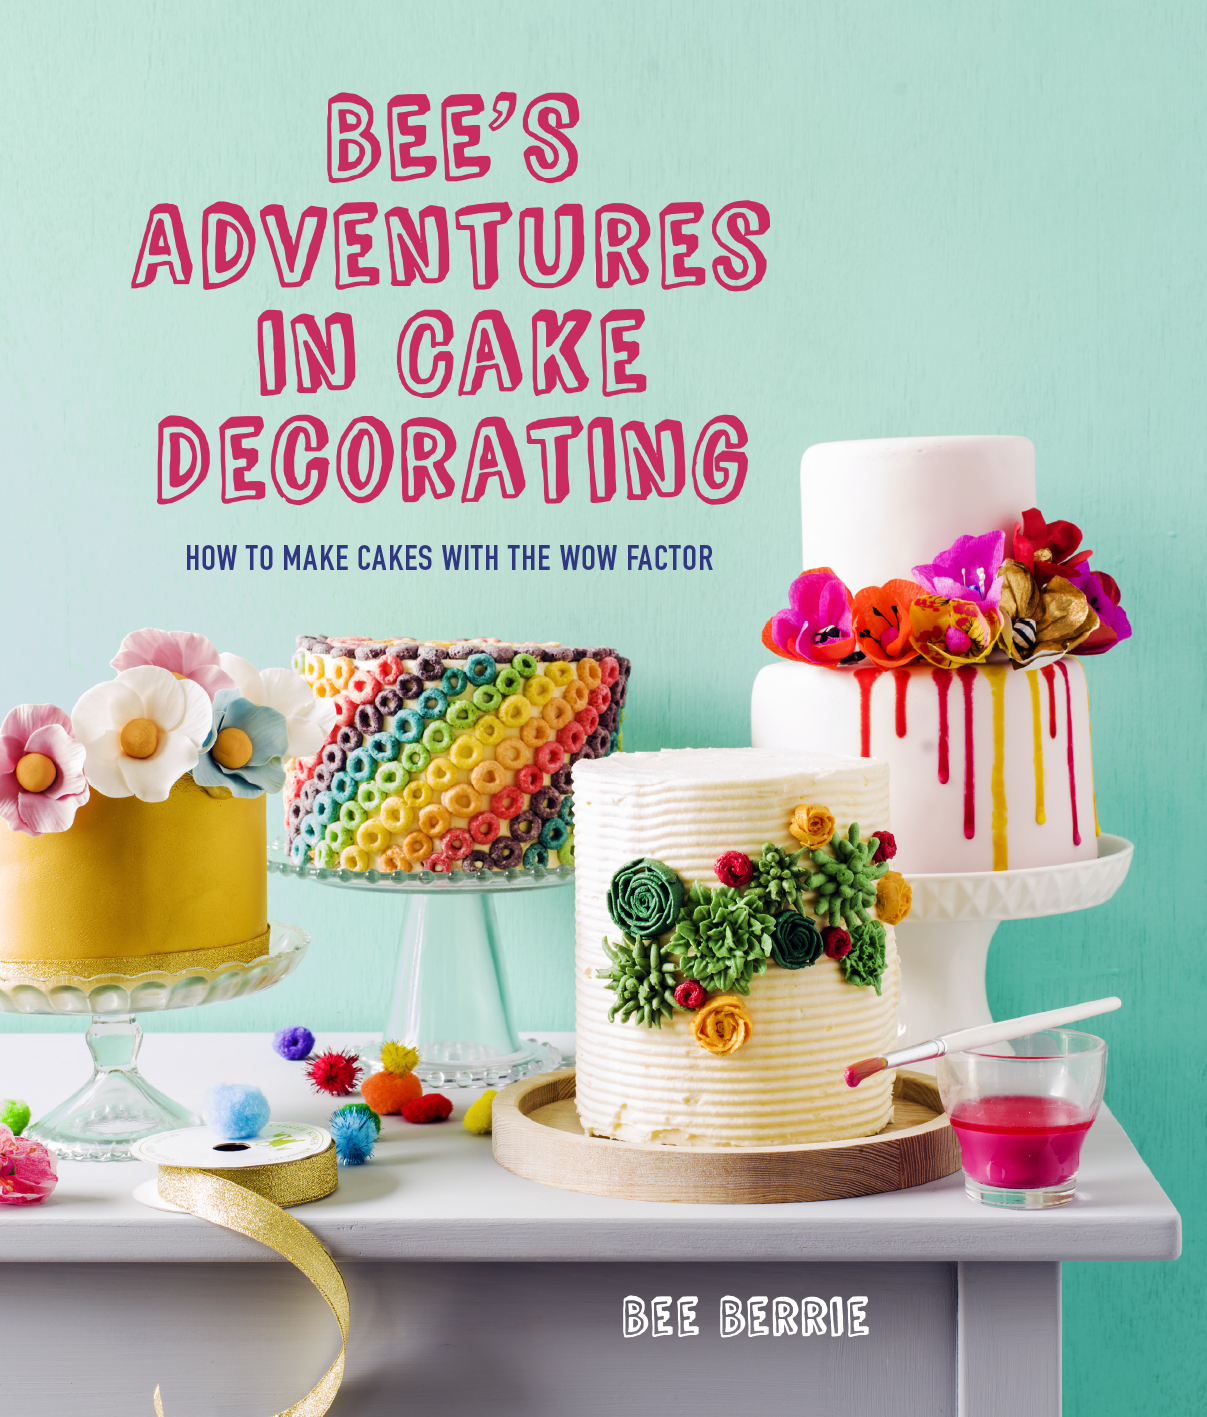 Bee's Adventures in Cake Decorating